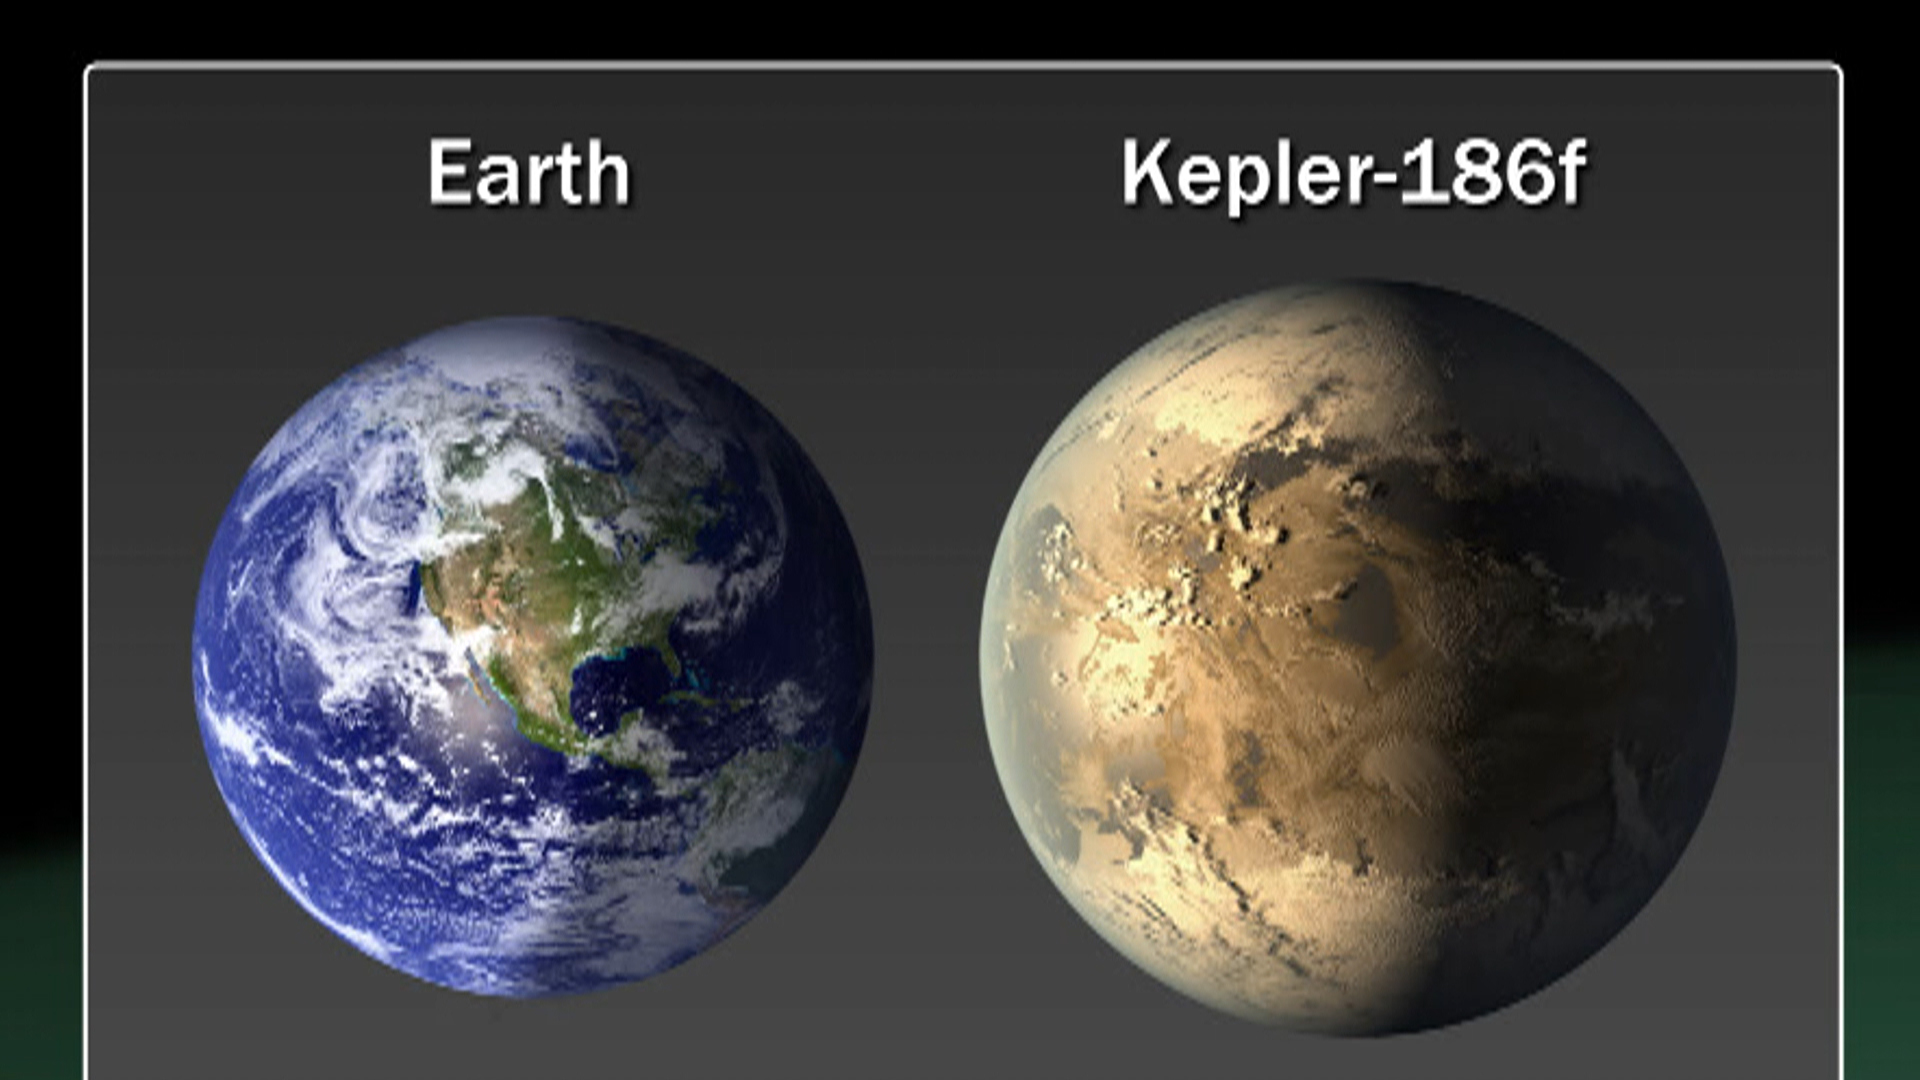 A Planet Similar to Earth?